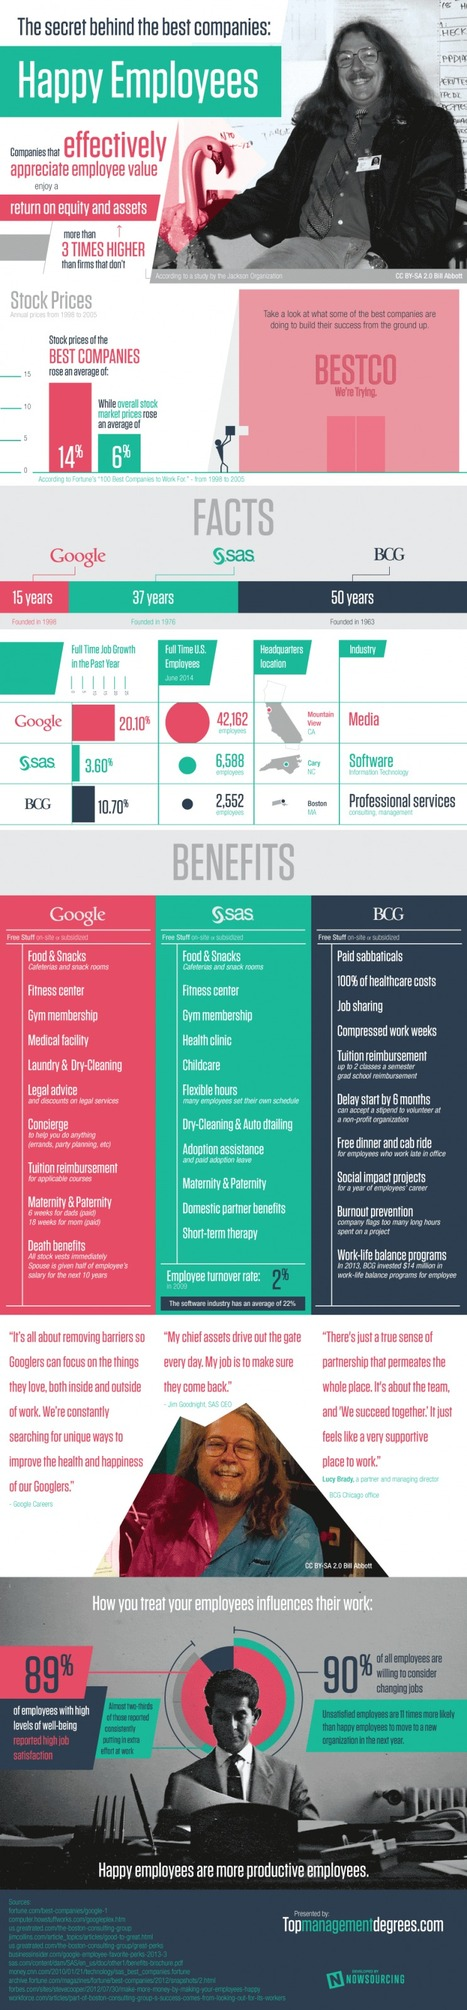 The secret behind the best companies [infographic] | MarketingHits | Scoop.it